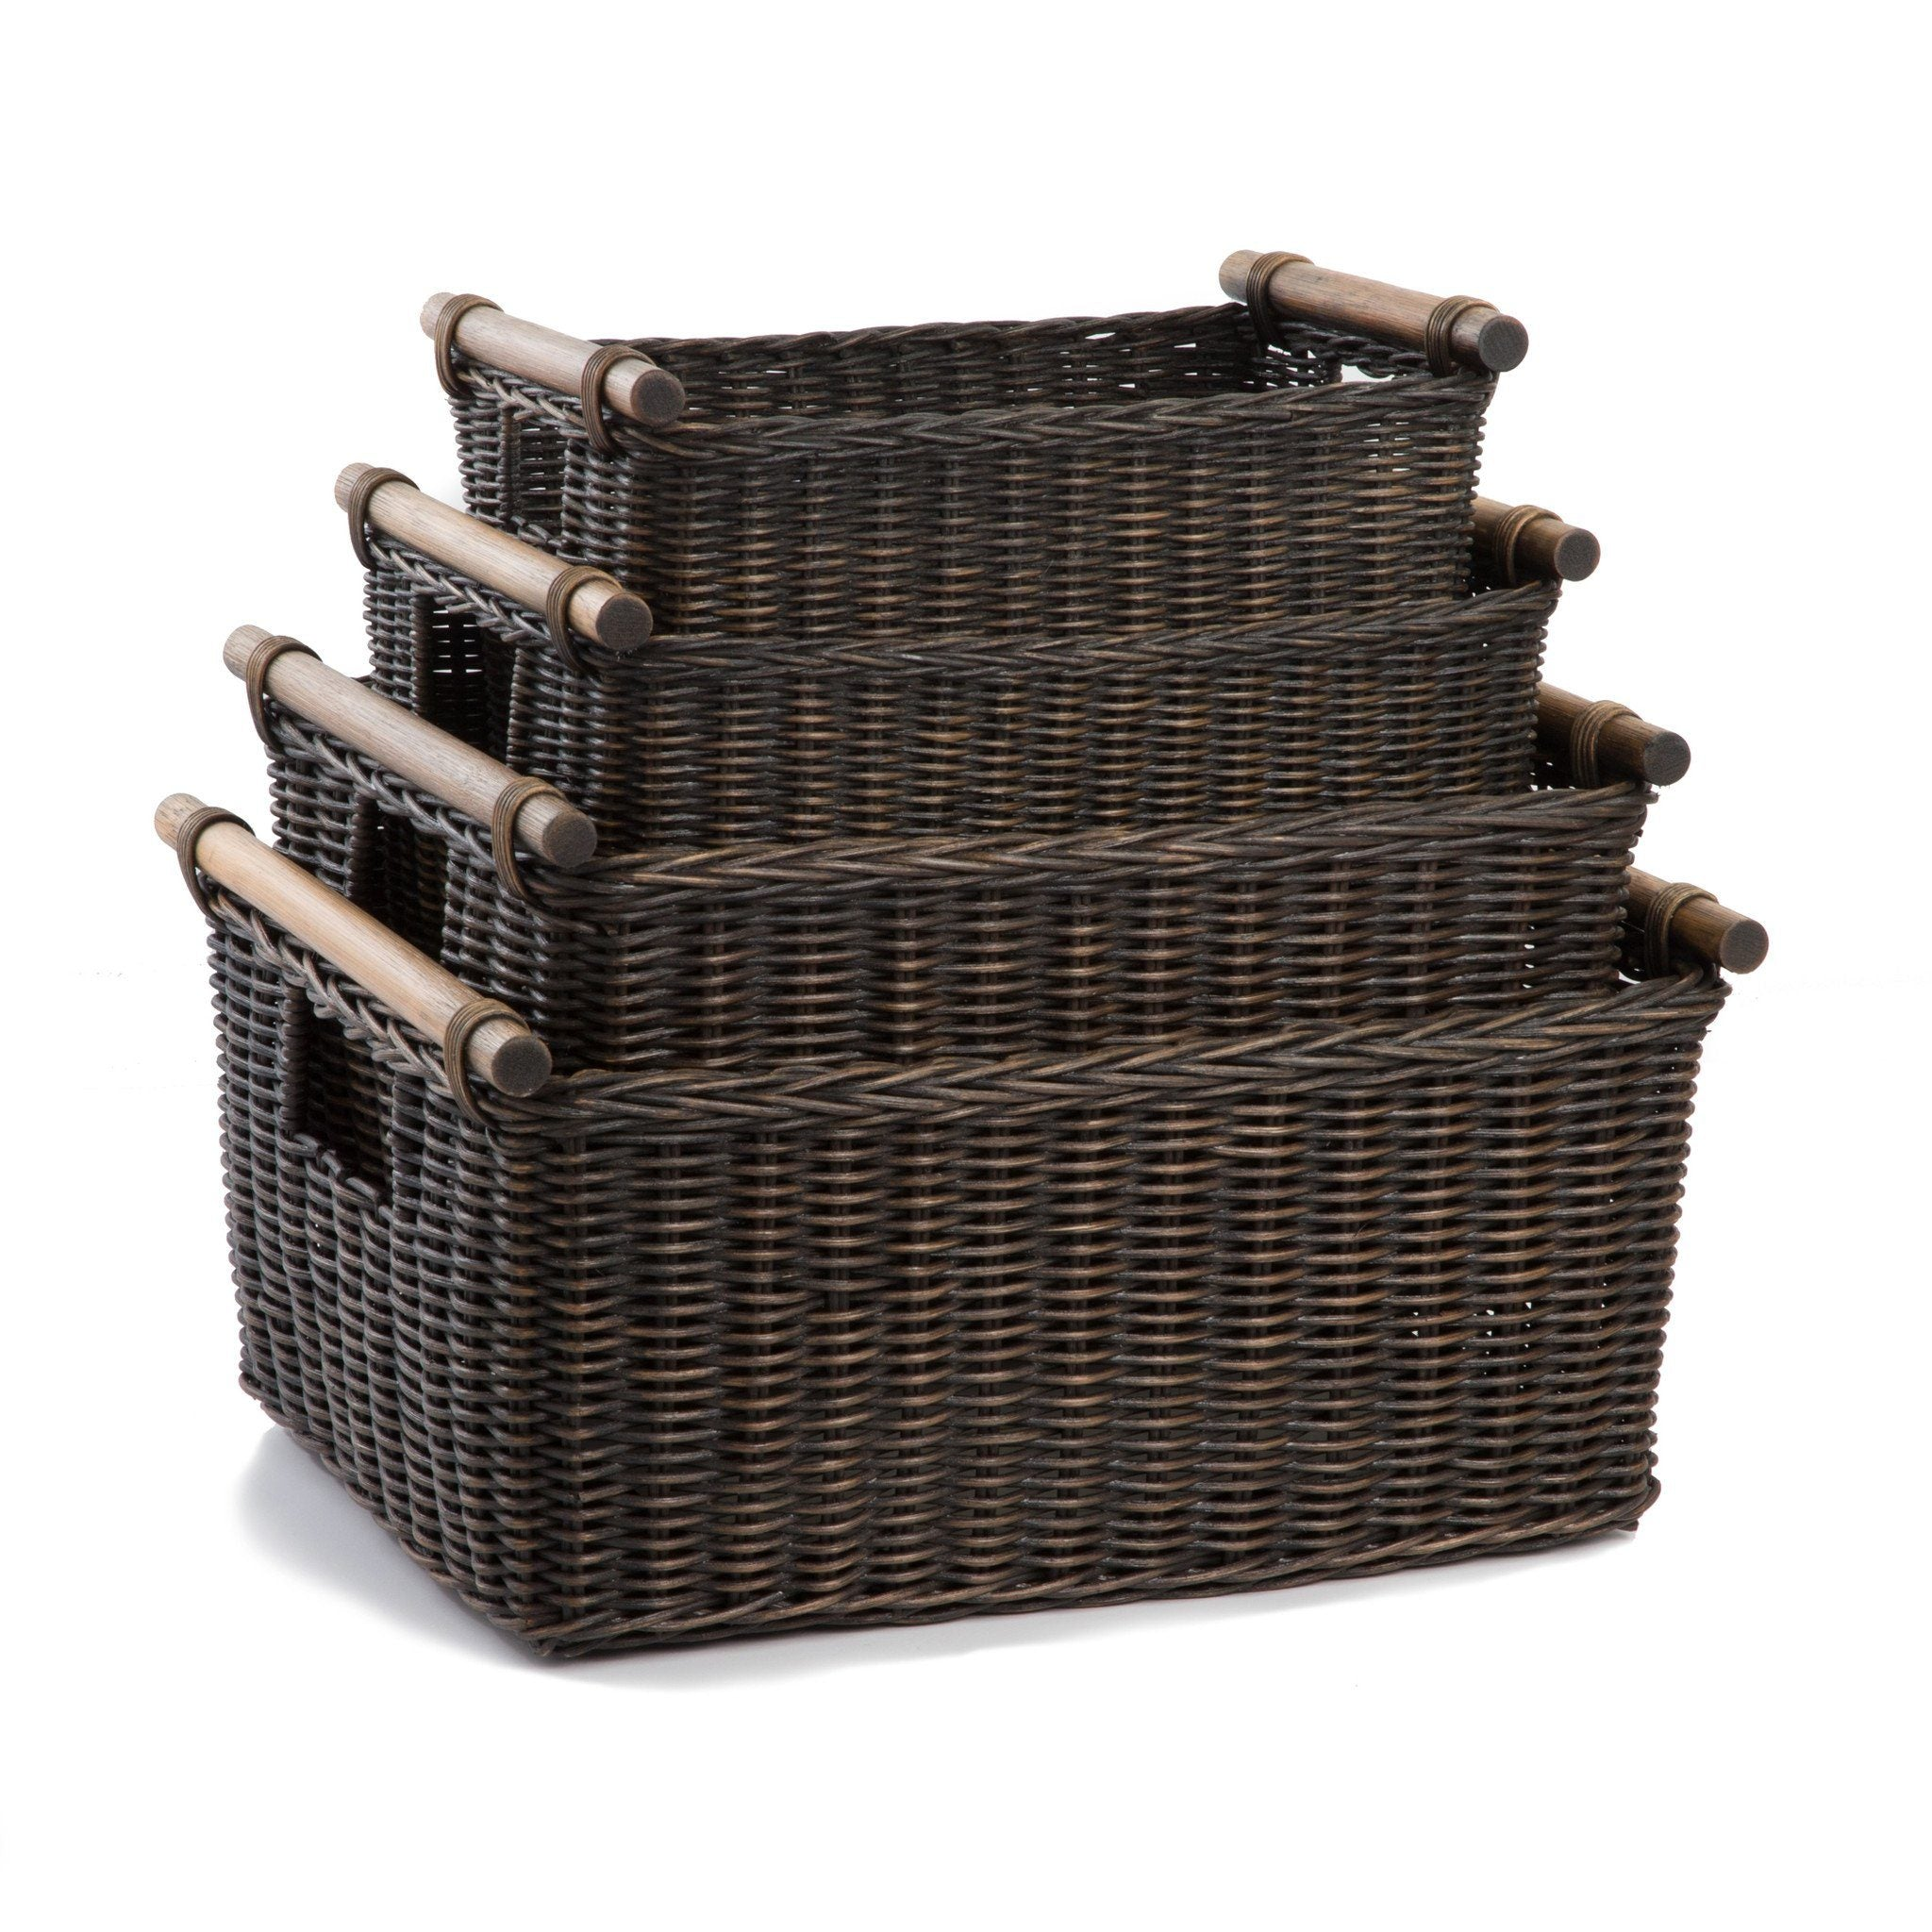 wicker baskets, decorative baskets  woven baskets  the basket lady, Home decor